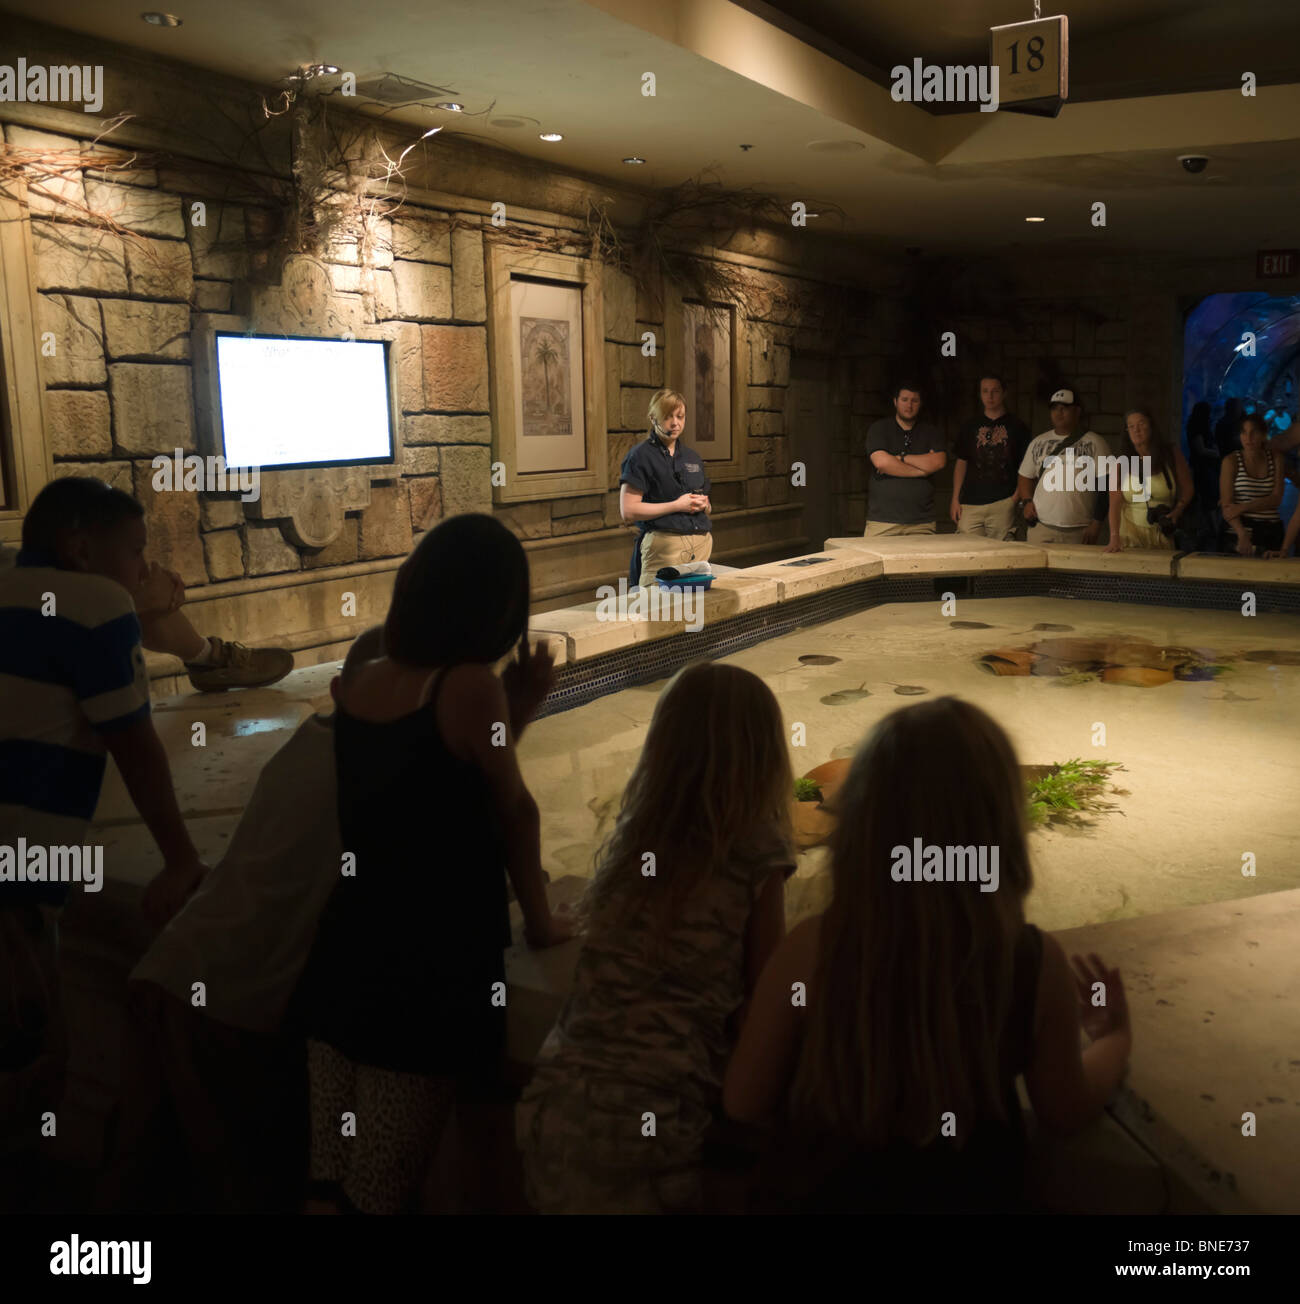 Mandalay Bay resort hotel Las Vegas - Shark Reef aquarium visitor attraction, rays and flatfish with visitors - Stock Image